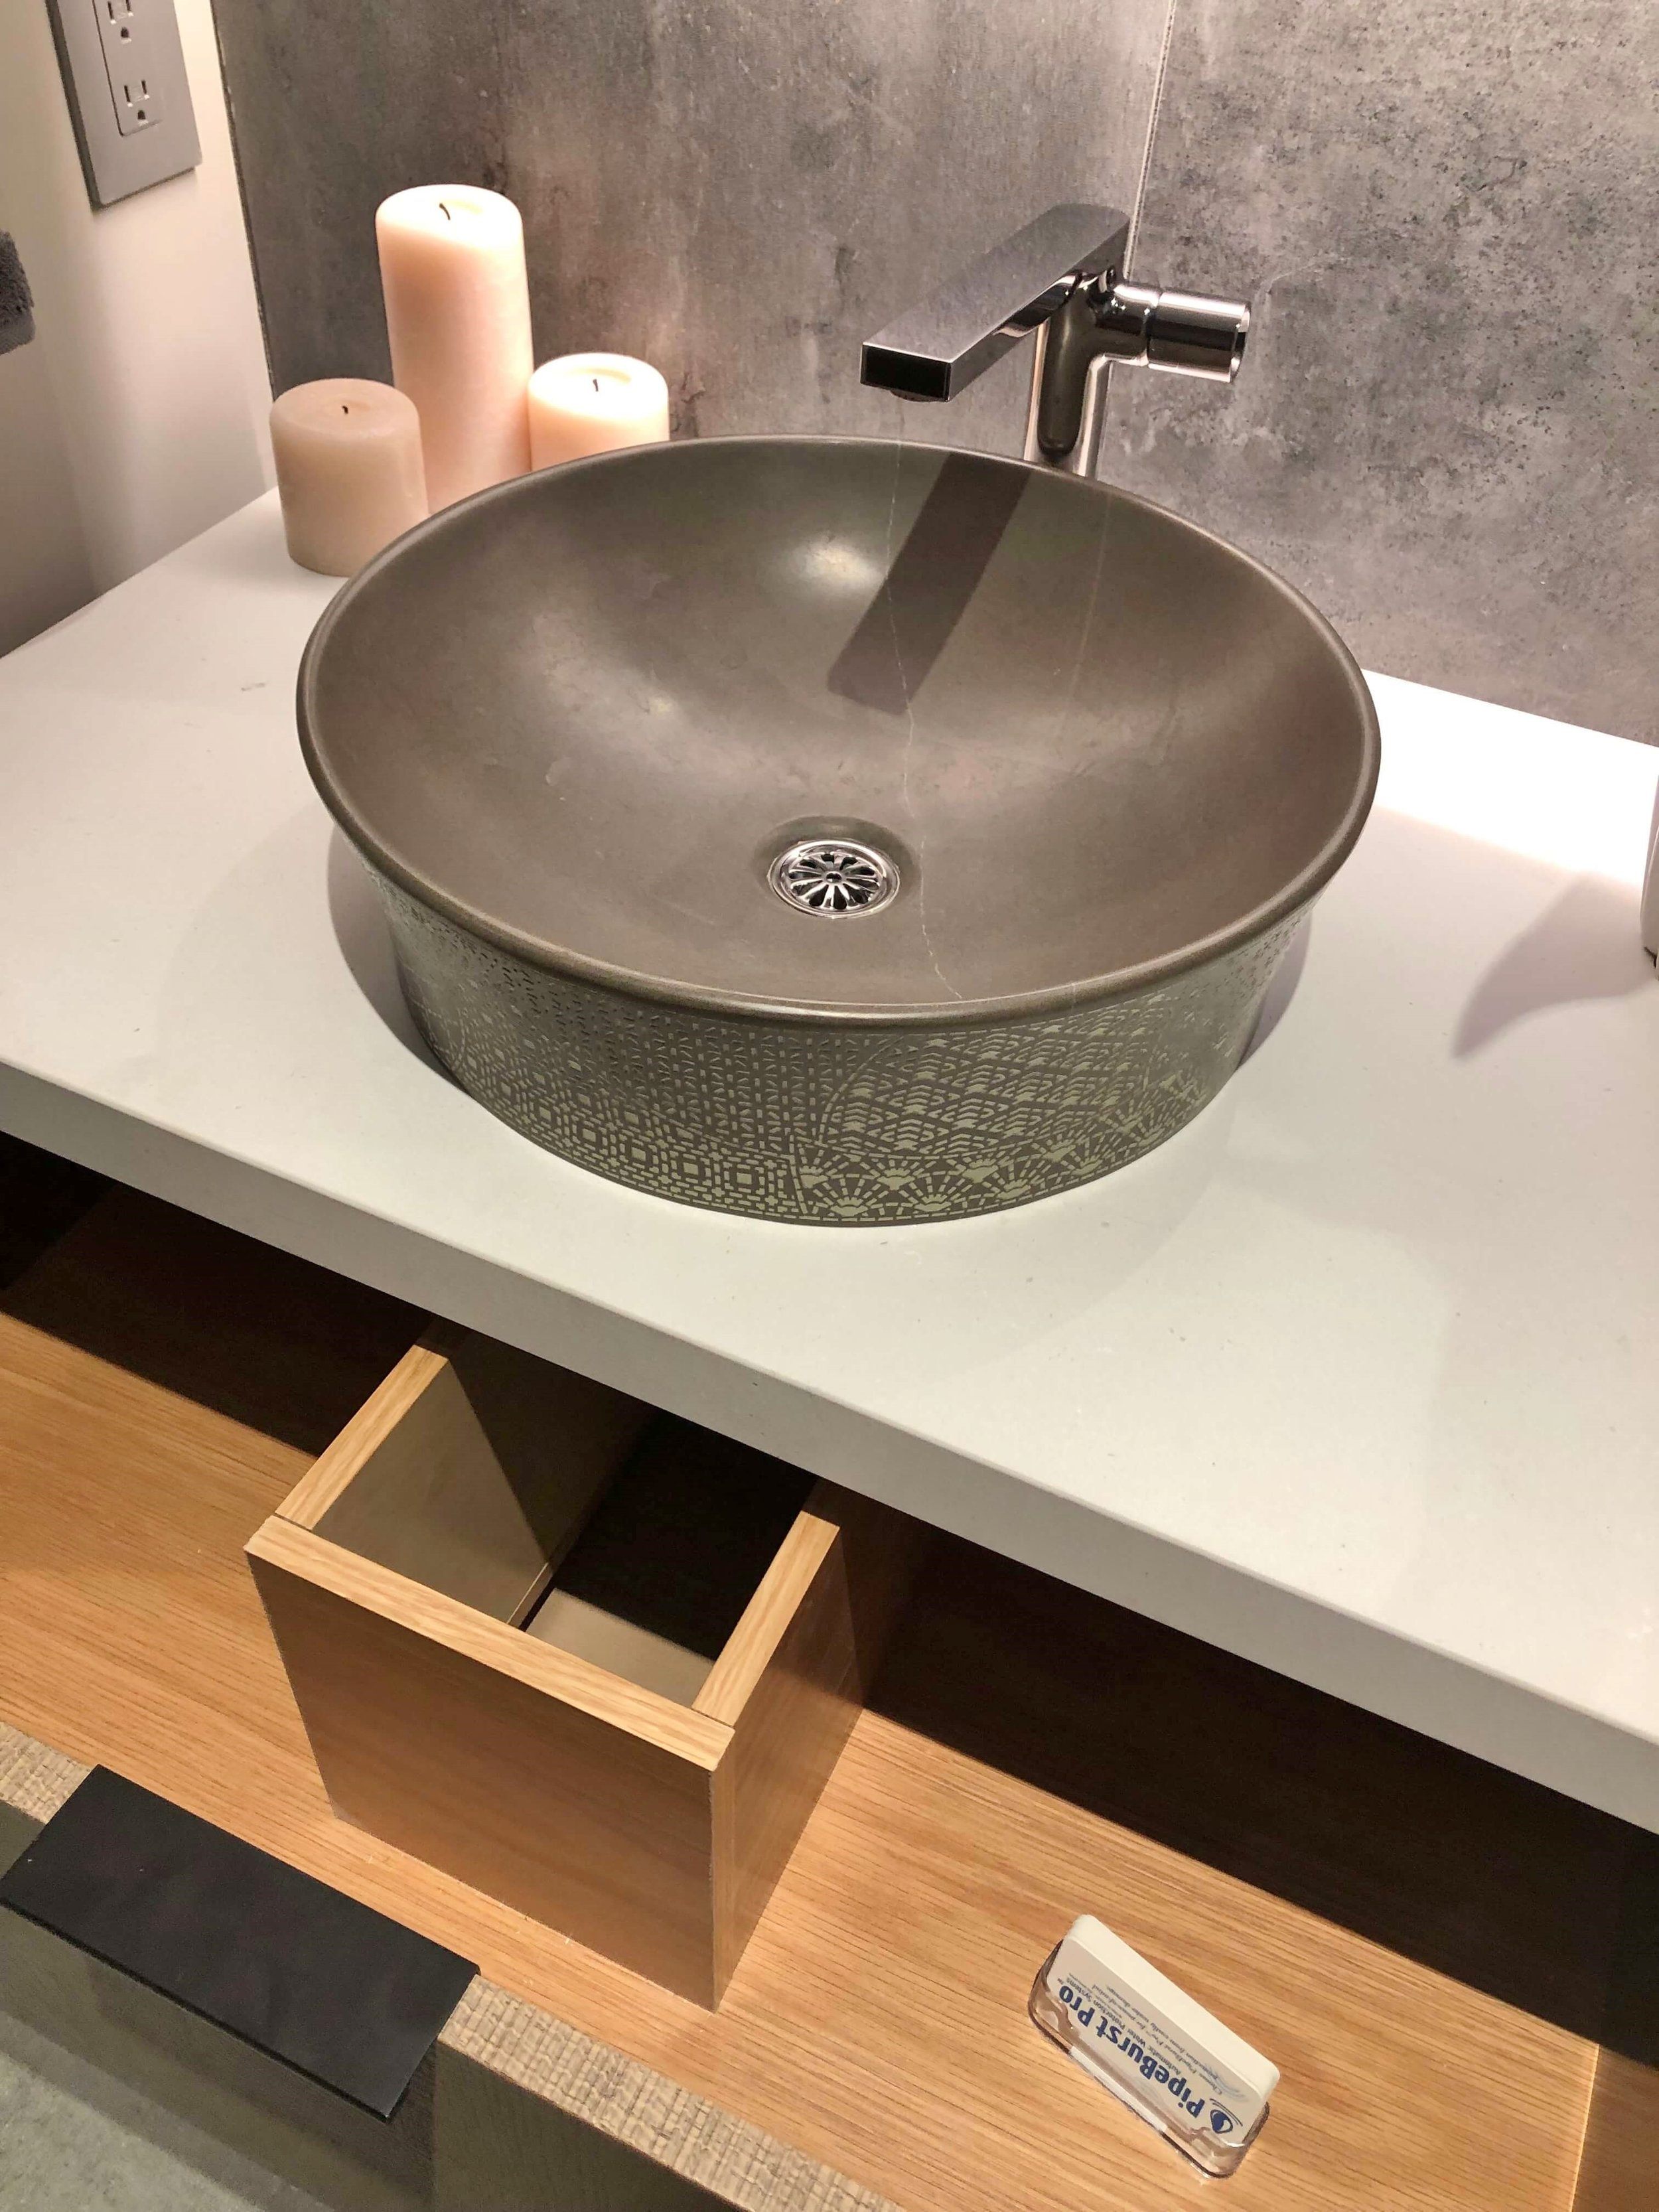 Textural pattern on the vessel sink with useful storage below in the powder room vanity. The New American Remodel 2019 #hometour #vesselsink #powderroom #contemporaryhome